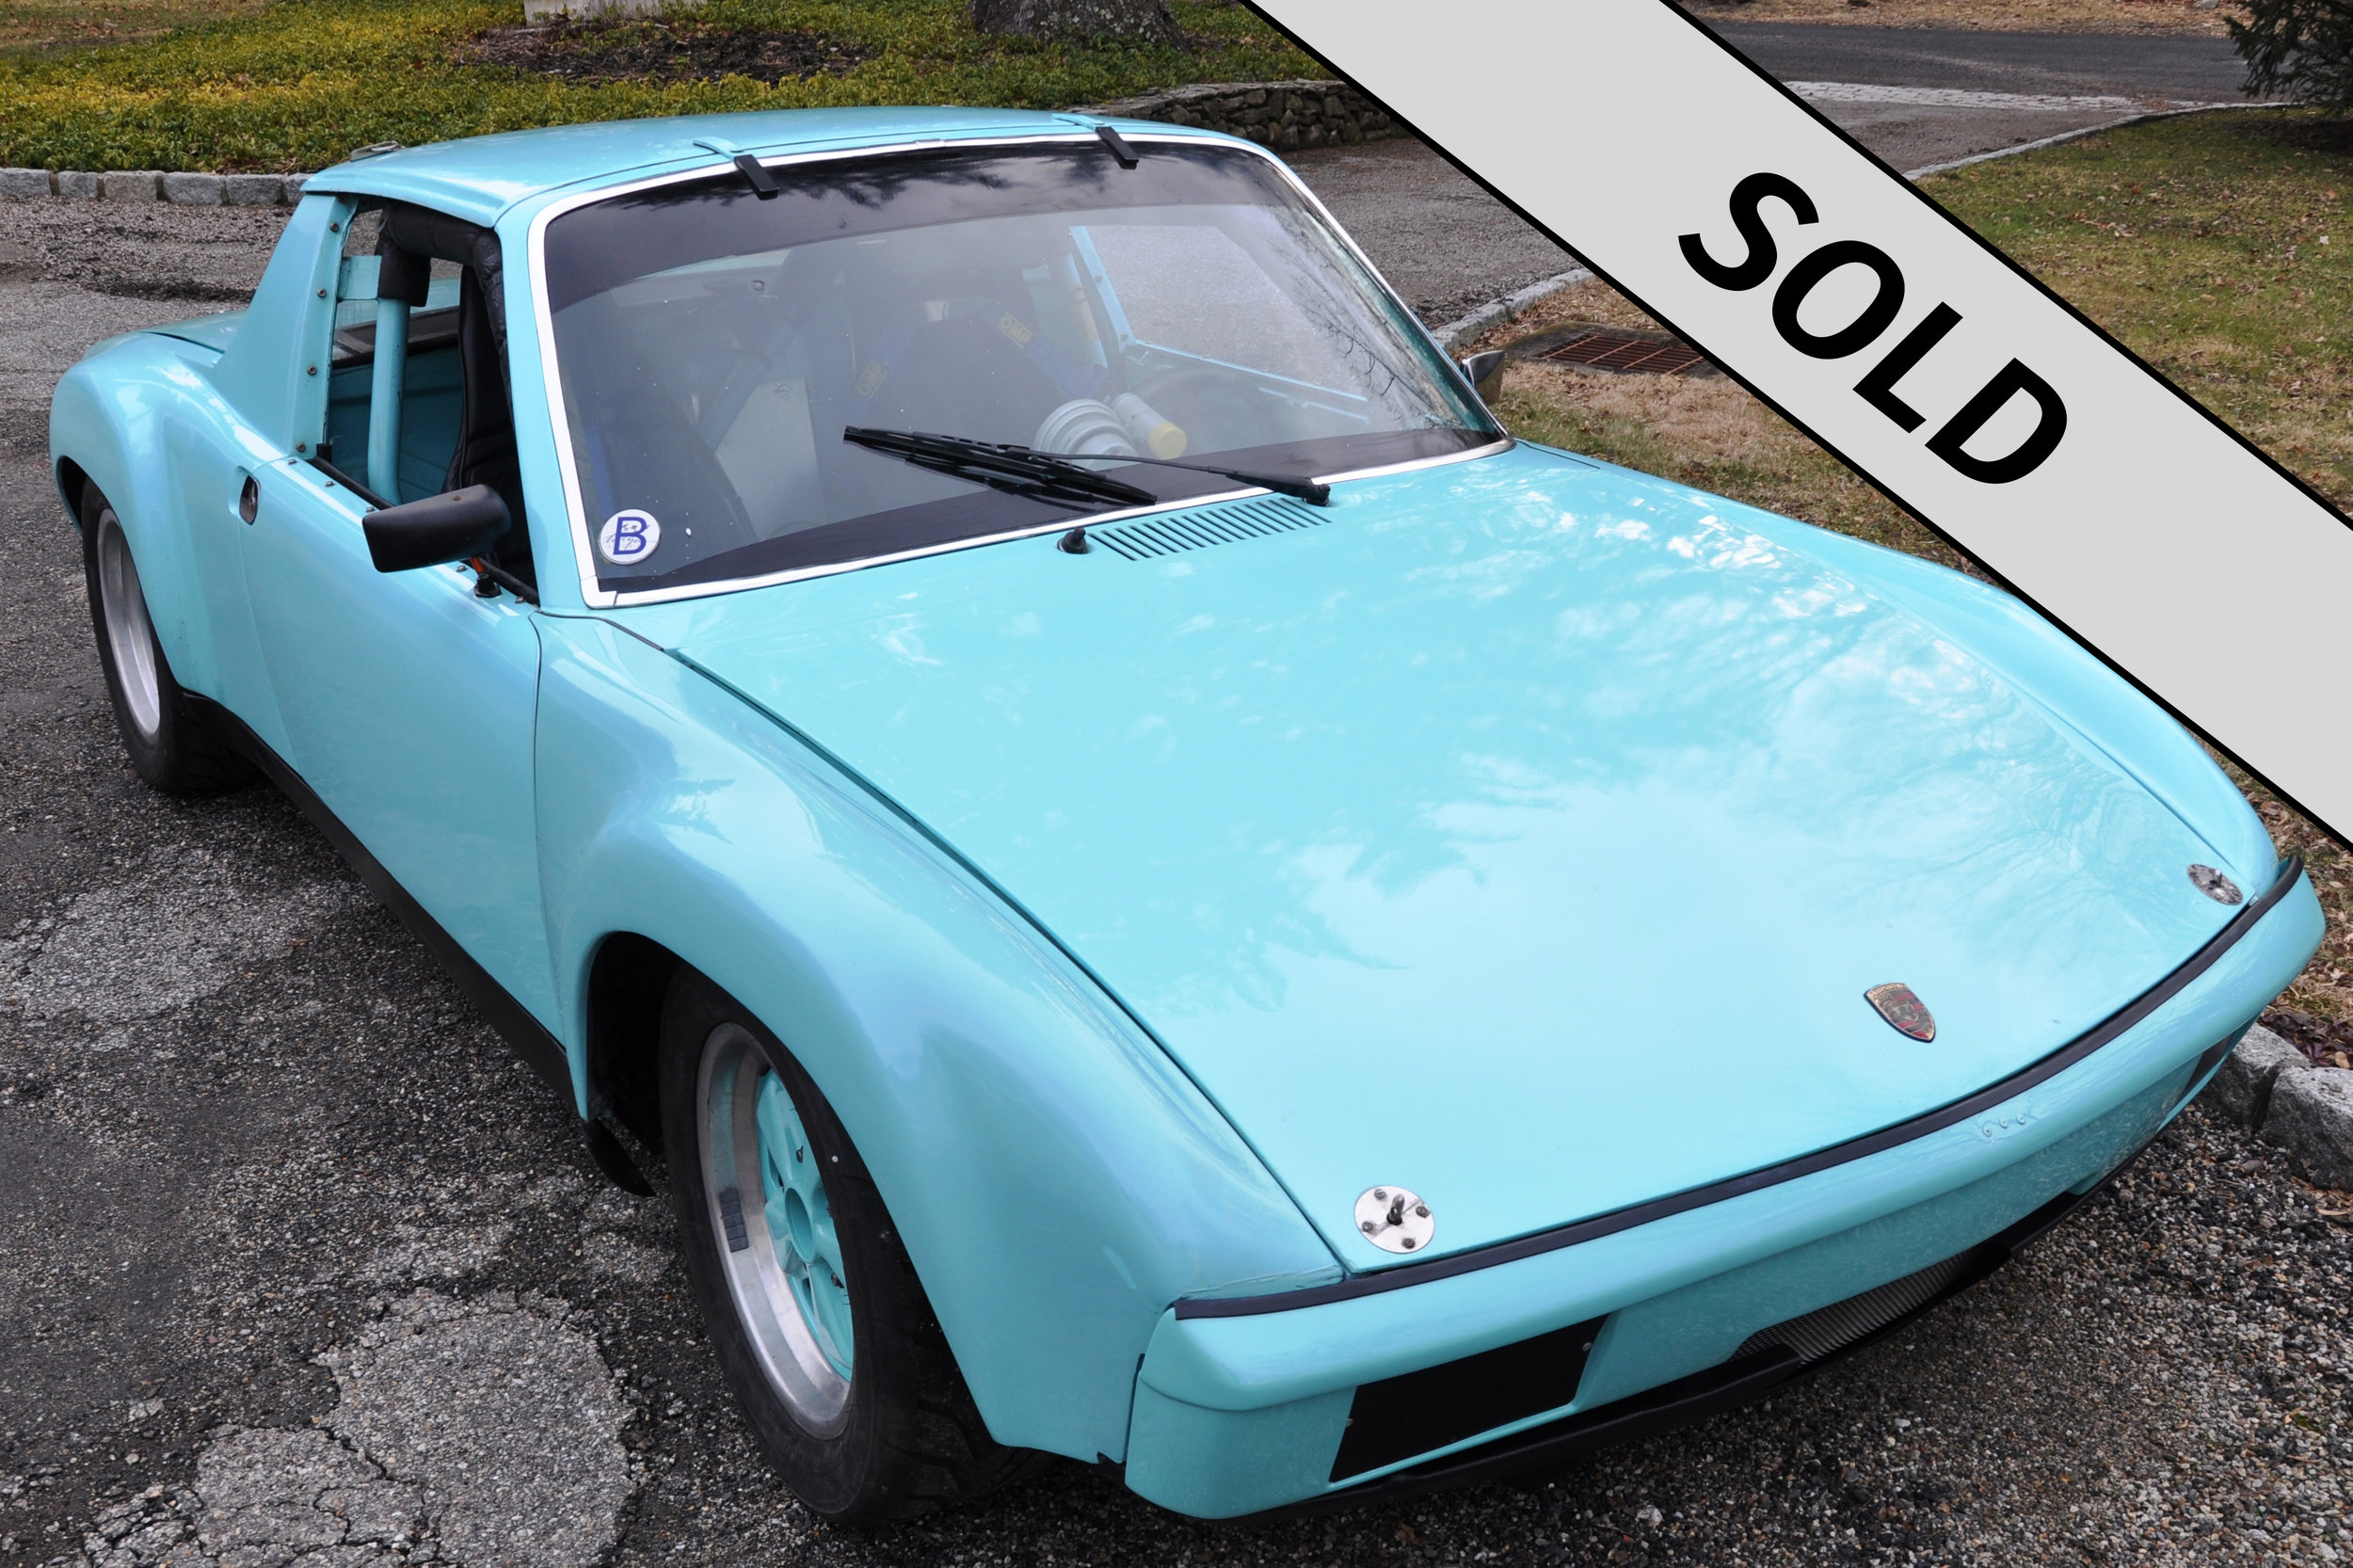 1973 Porsche 914-6 Blue Speed 4-2017 (26) SOLD.jpg